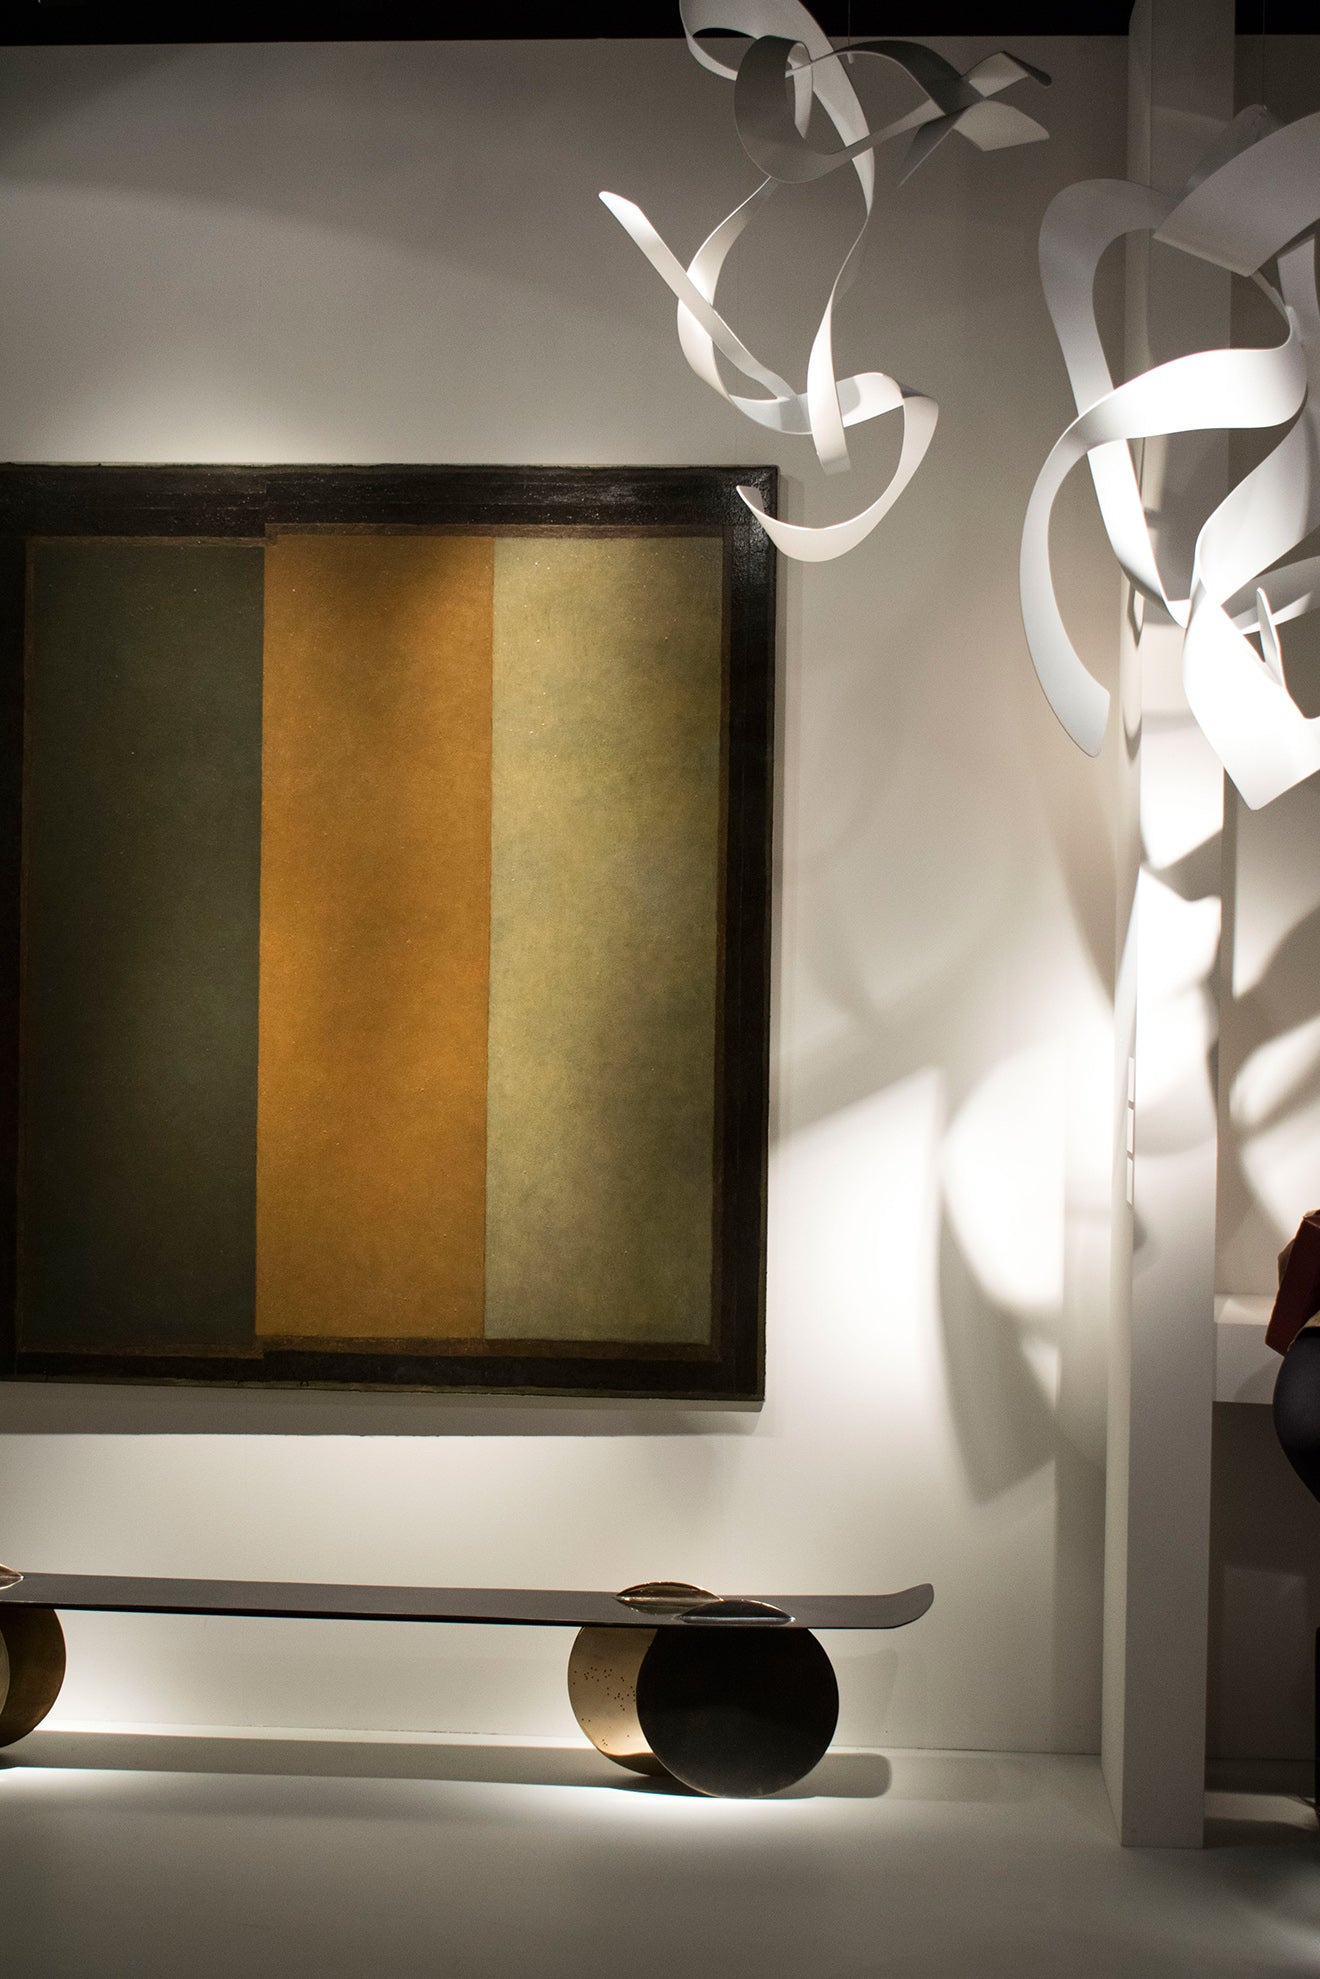 Abstract art gallery on display at Masterpiece 2017